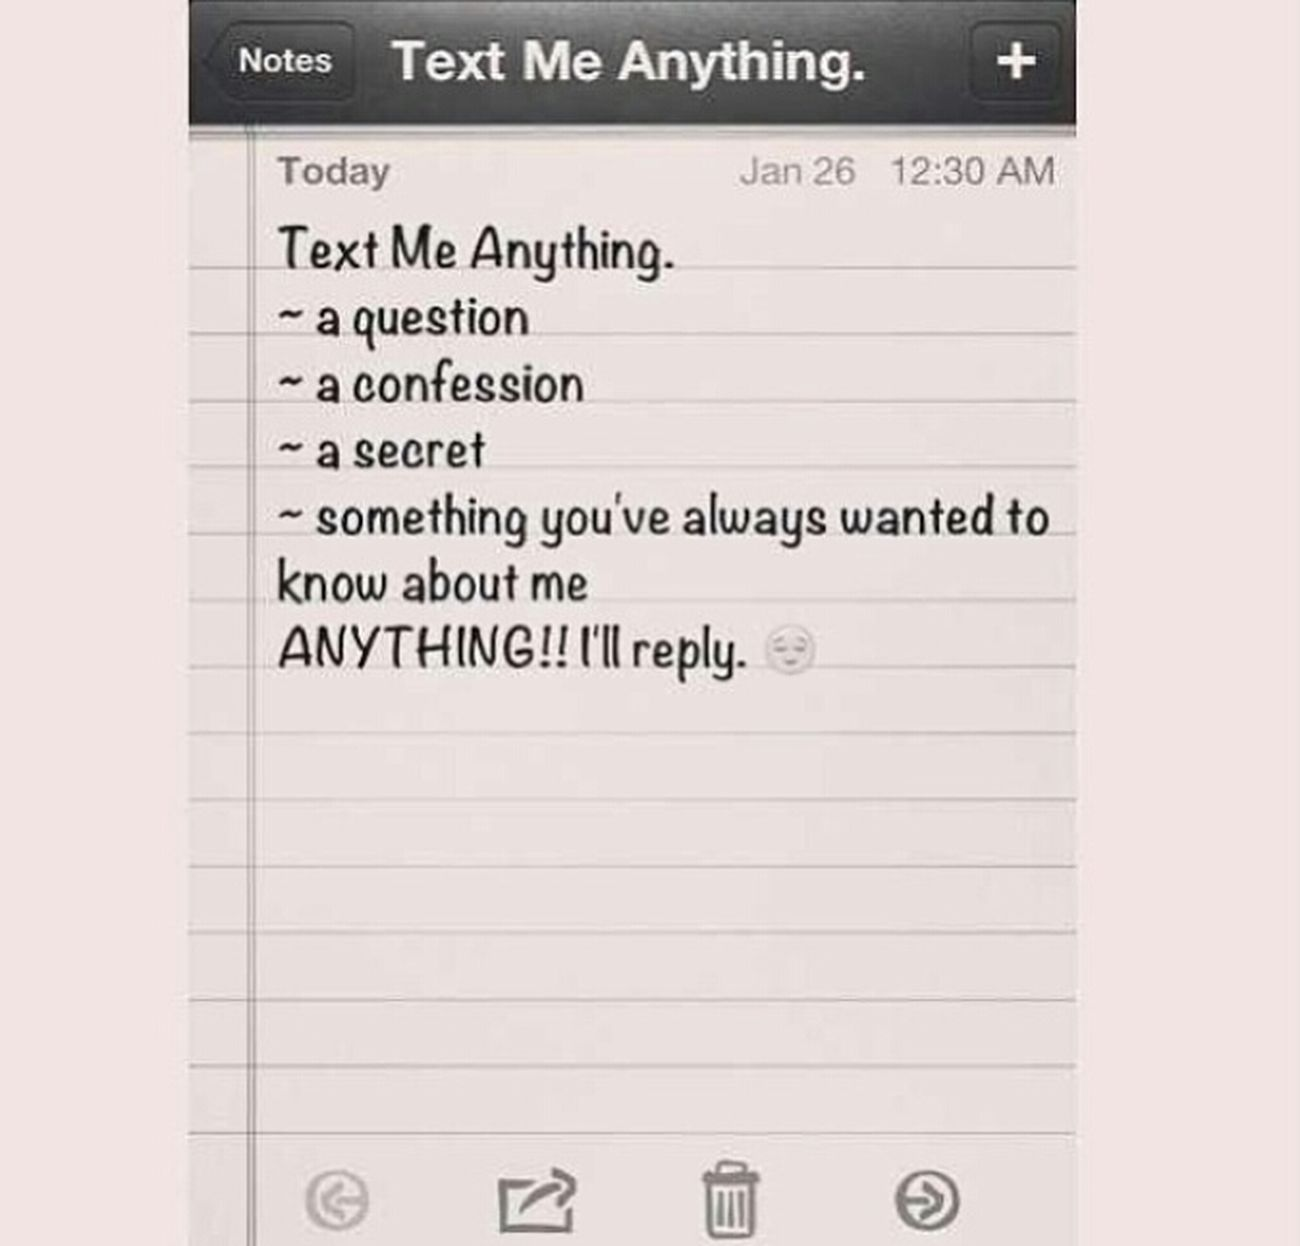 ehhhh kinda scared but uhmm yea lets Go ! TEXT MY PHONE Ill Reply (: 4049906125